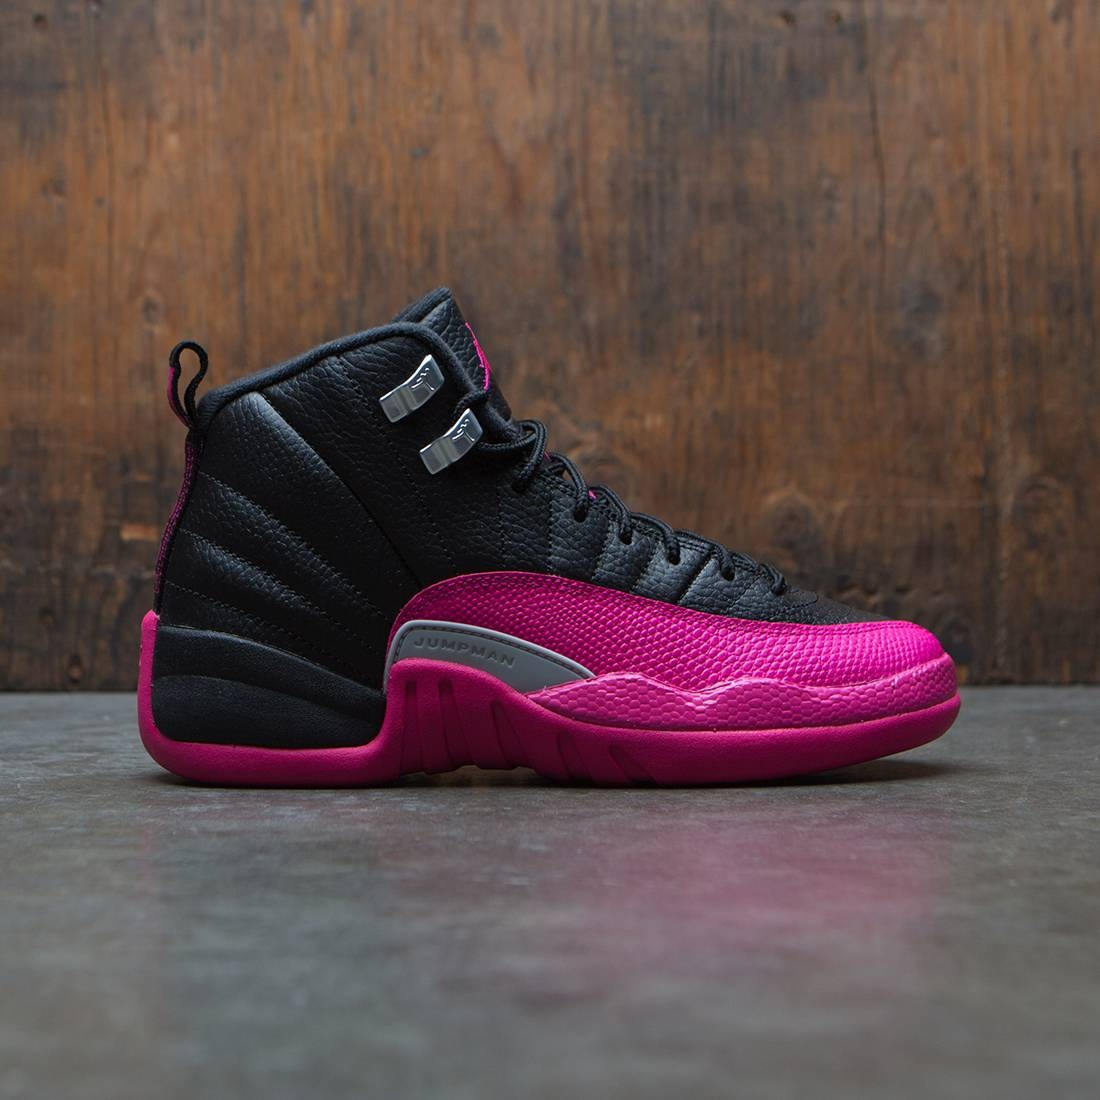 jordan big kids girls' air jordan 12 retro gs black deadly pink metallic silver